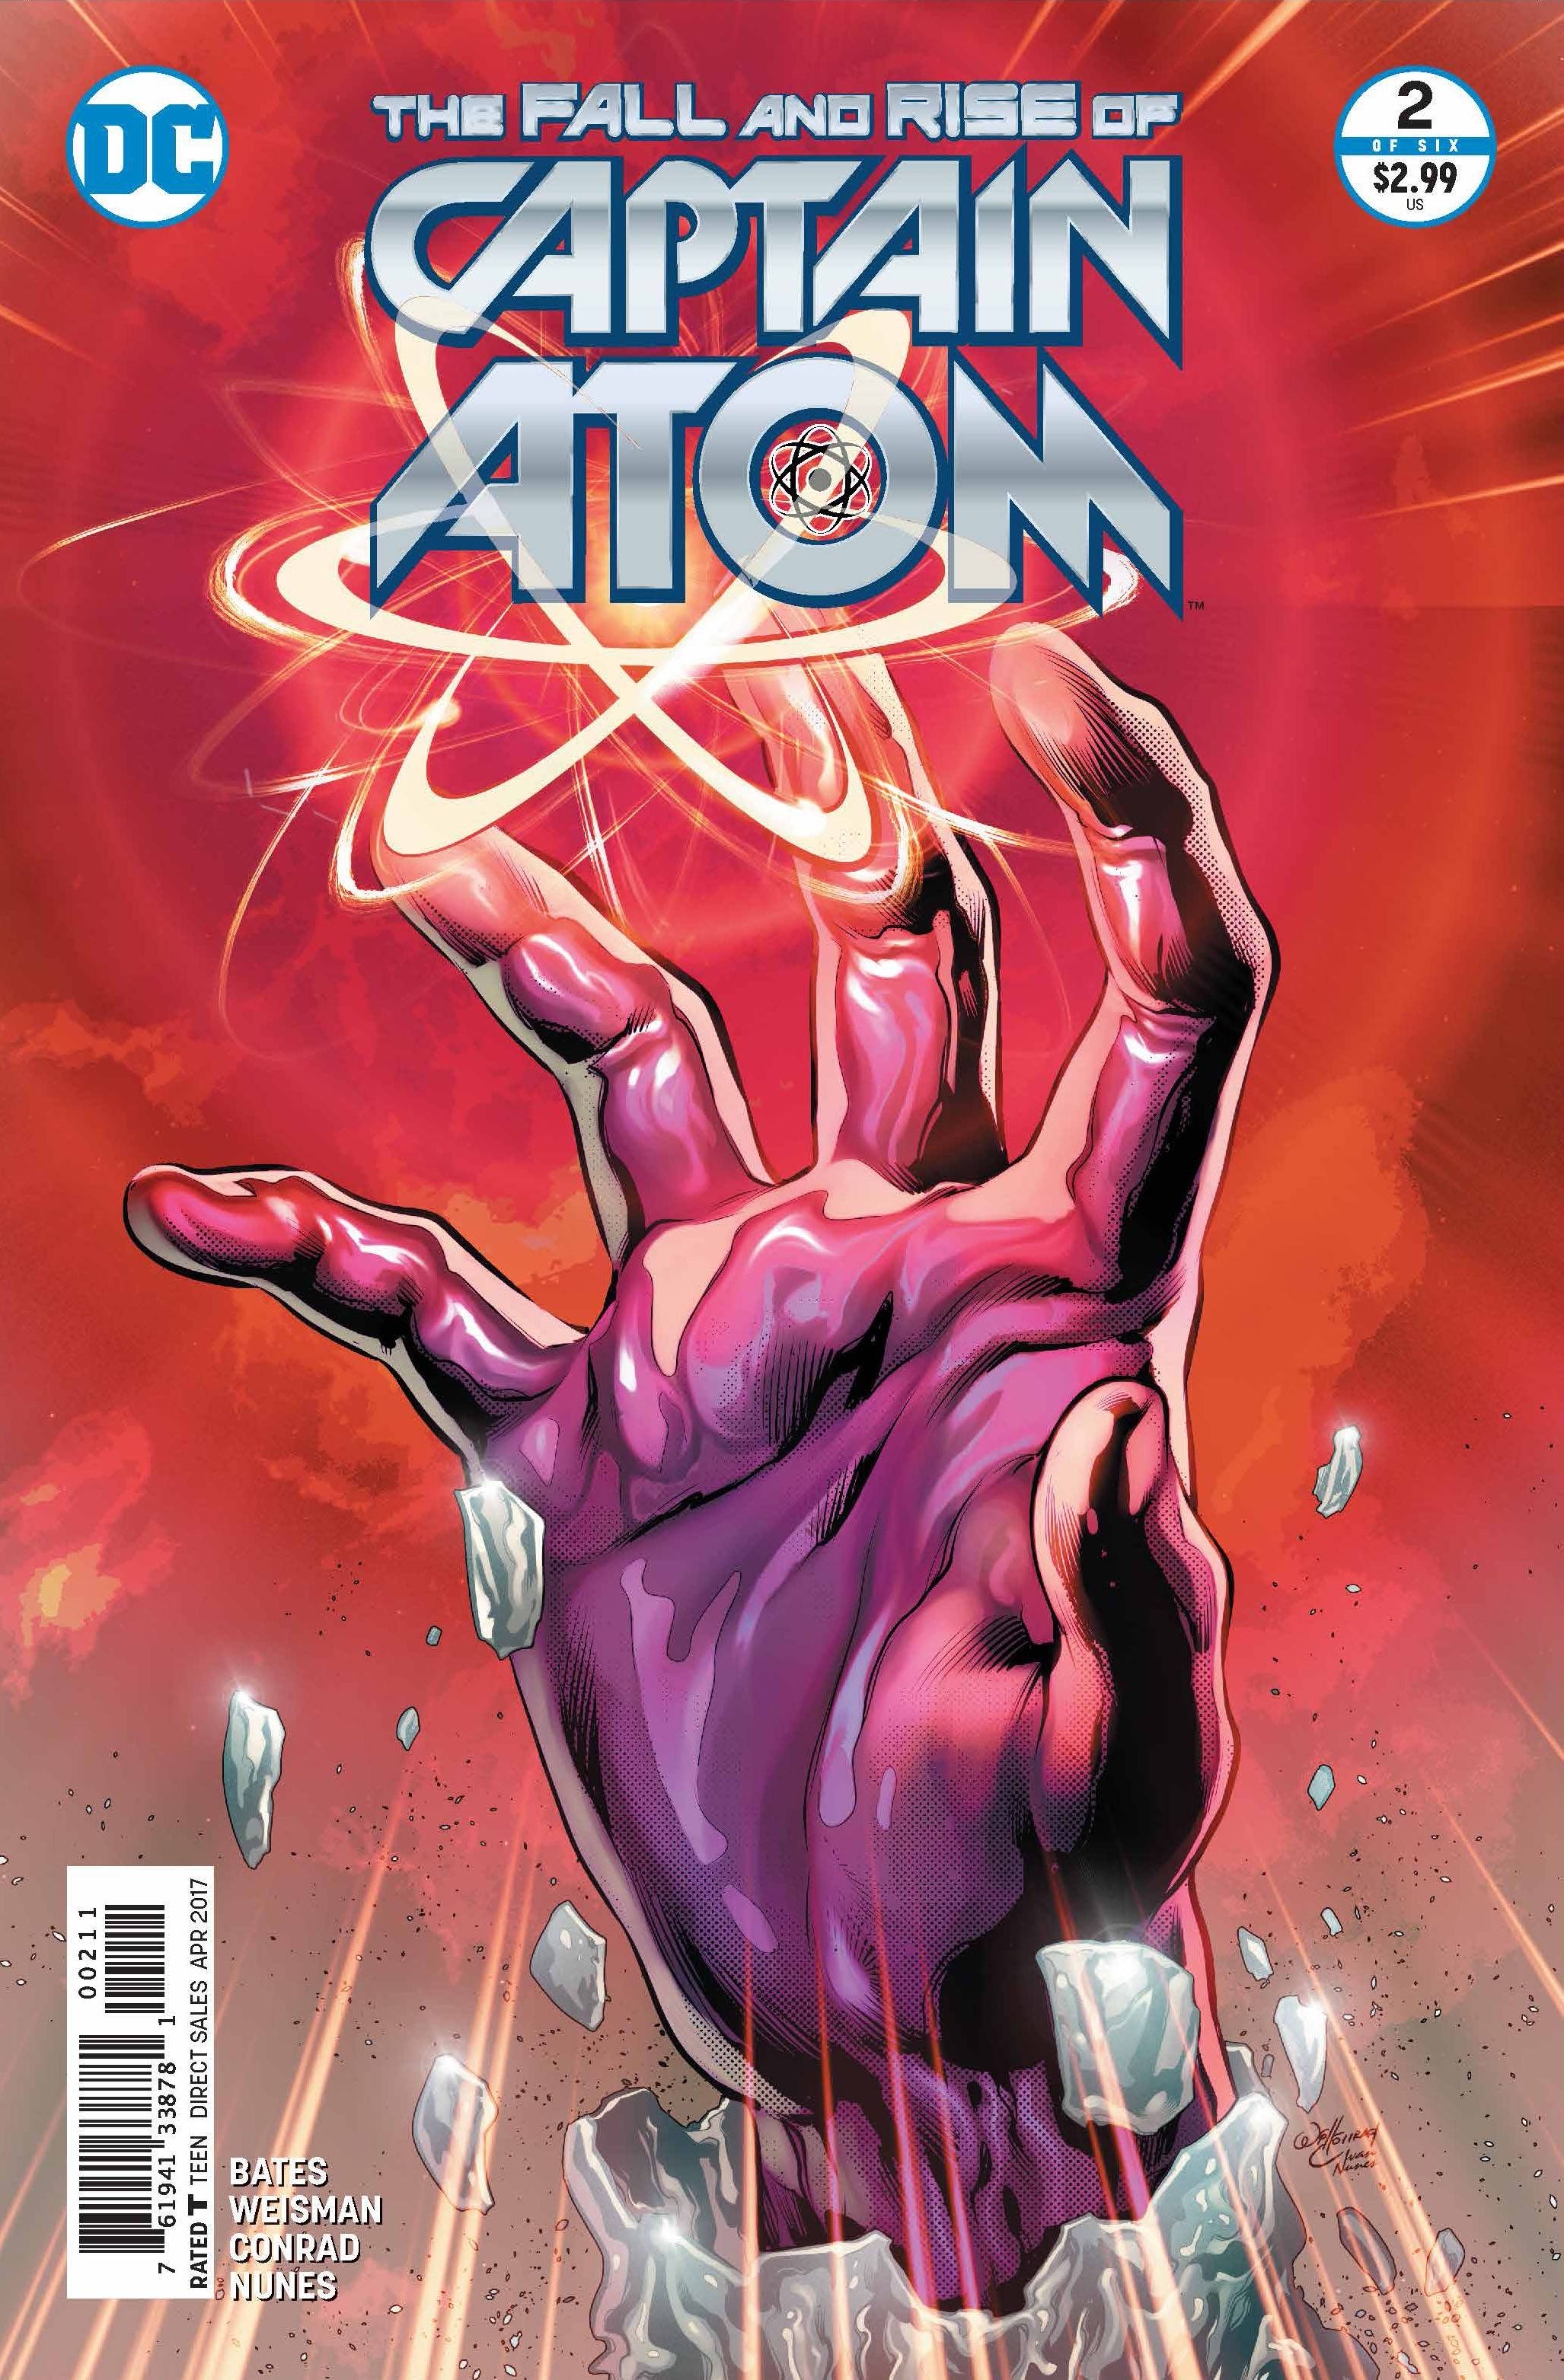 FALL AND RISE OF CAPTAIN ATOM #2